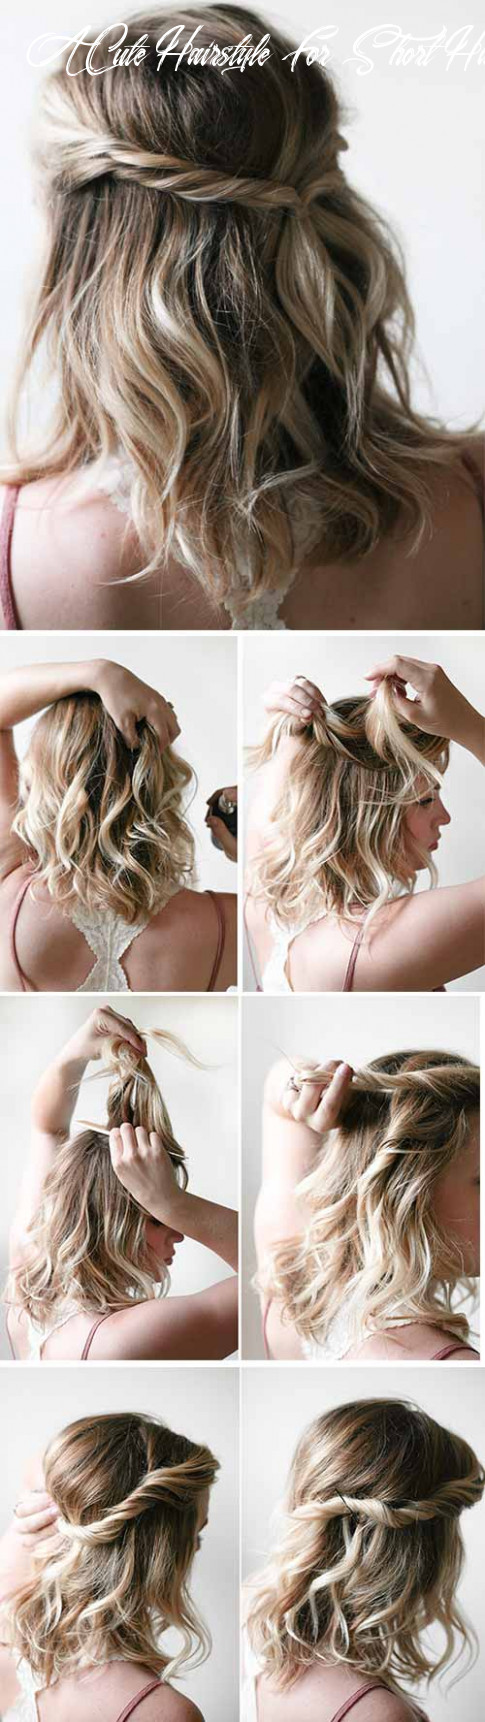 11 incredible diy short hairstyles a step by step guide a cute hairstyle for short hair